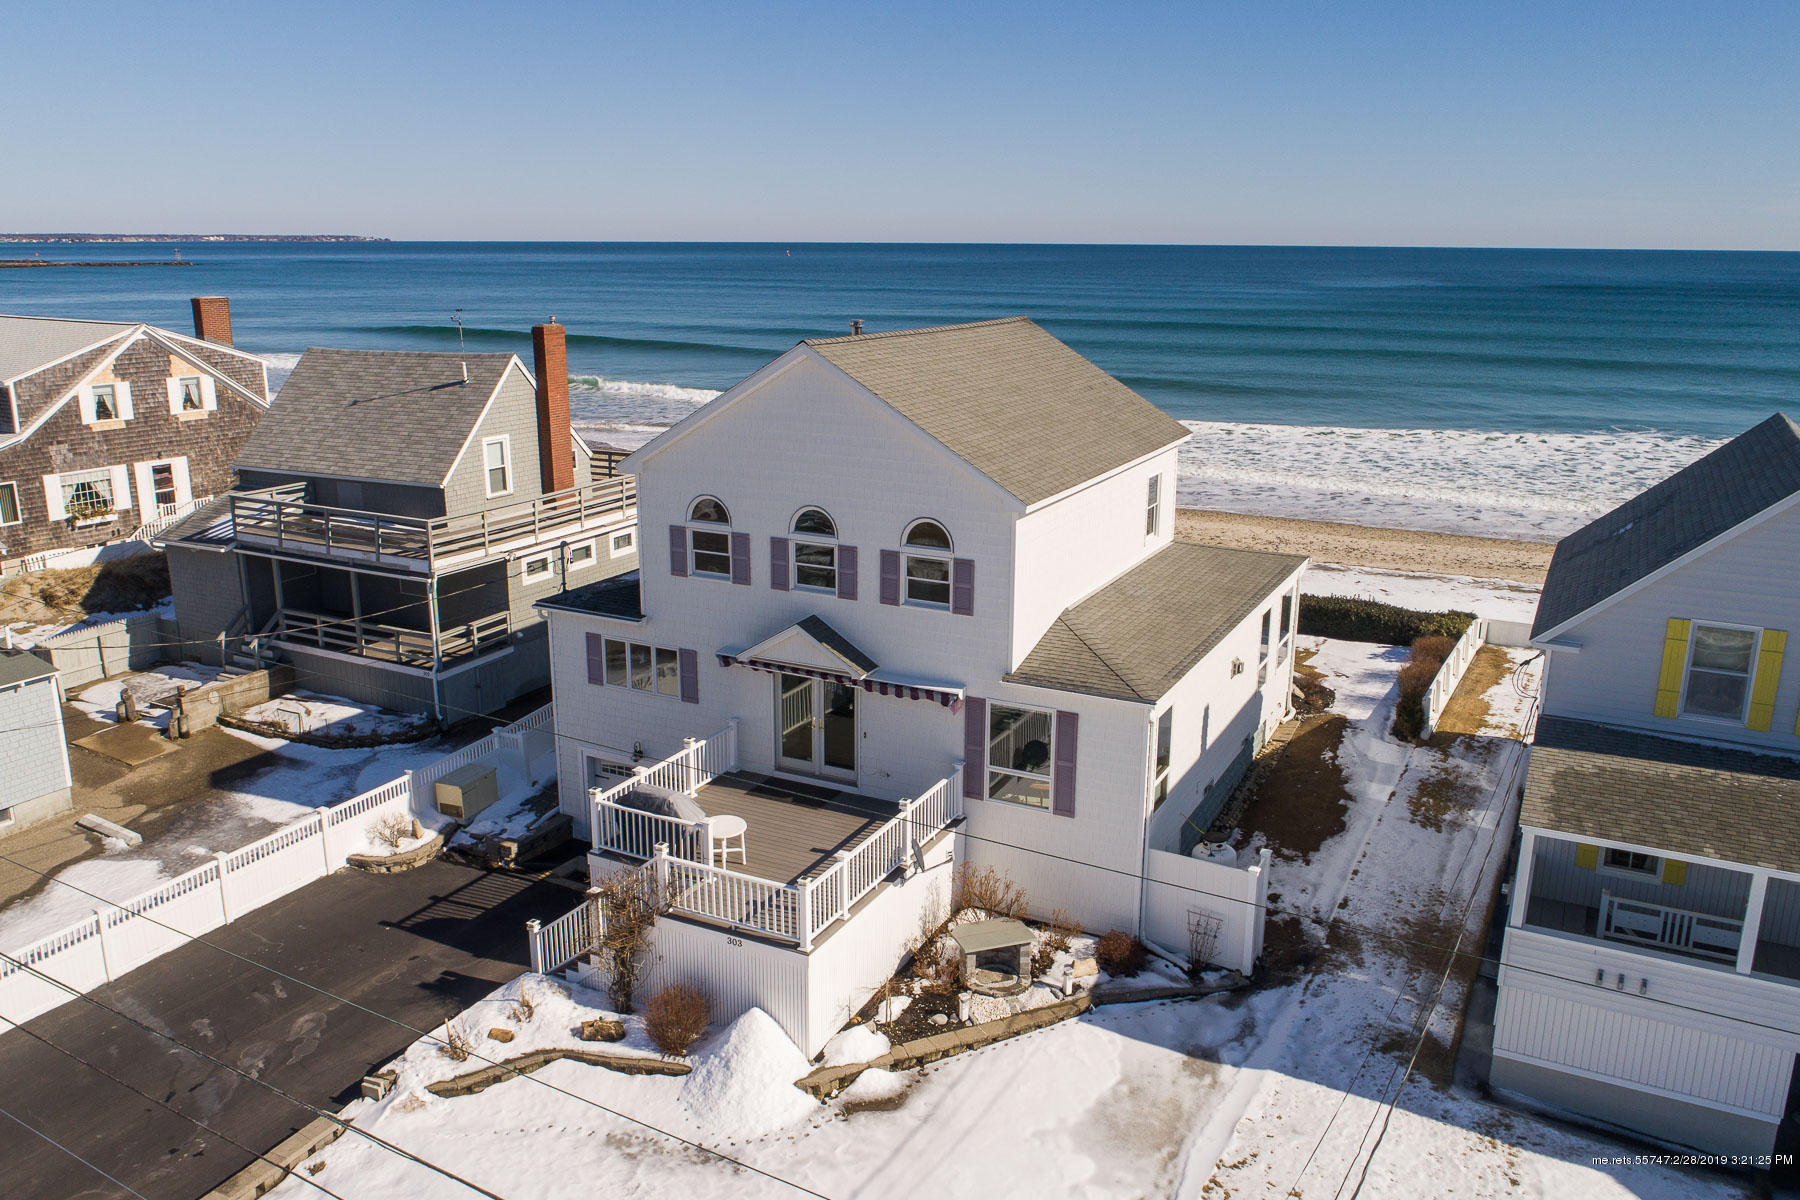 Still looking for an oceanfront property? How about one with 55'of deeded waterfront? With no rocks taking up valuable 'beachestate' to climb over, no bluff to climb down from, no seawall to navigate, just 2 steps down to a soft sandy beach, even at high tide! Located near the north end of Atlantic Ave on Wells Beach  this beautiful home built in 1896, purchased in 1942. 4 1/2 generations later   completely renovated, remodeled and updated inside and out. Turn-key and maintenance free. On the back is a large weatherproof deck, with a full roll out awning and a tankless gas grill providing a space for nonstop grilling and outdoor entertaining. Inside is a full open common room with new oversize windows everywhere to provide an everchanging, overwhelming 180 degree ocean view.    ss, granite and island with cooking space and a 4 top breakfast bar.comfortable diningarea.Upstairs2bdrms,1bth plus Ensuite MB w/panoramic ocean,view incl.moon and sunrises.Stop looking. This is a must see.